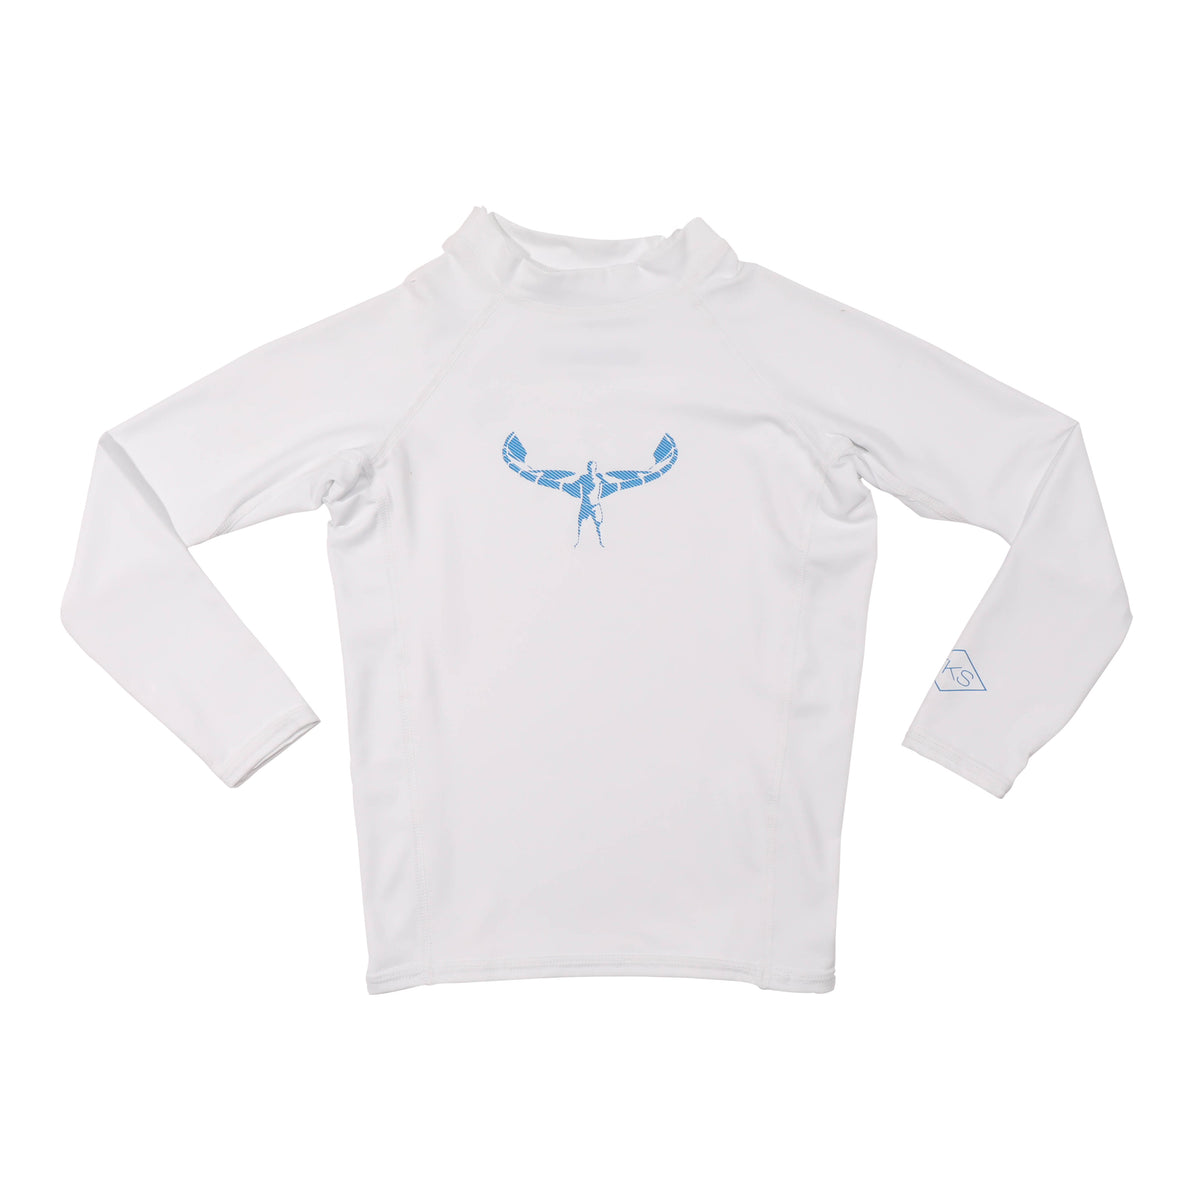 TKS MIAMI KIDS SUNSHIRT LOOSE FIT WHITE/BLUE UV 50